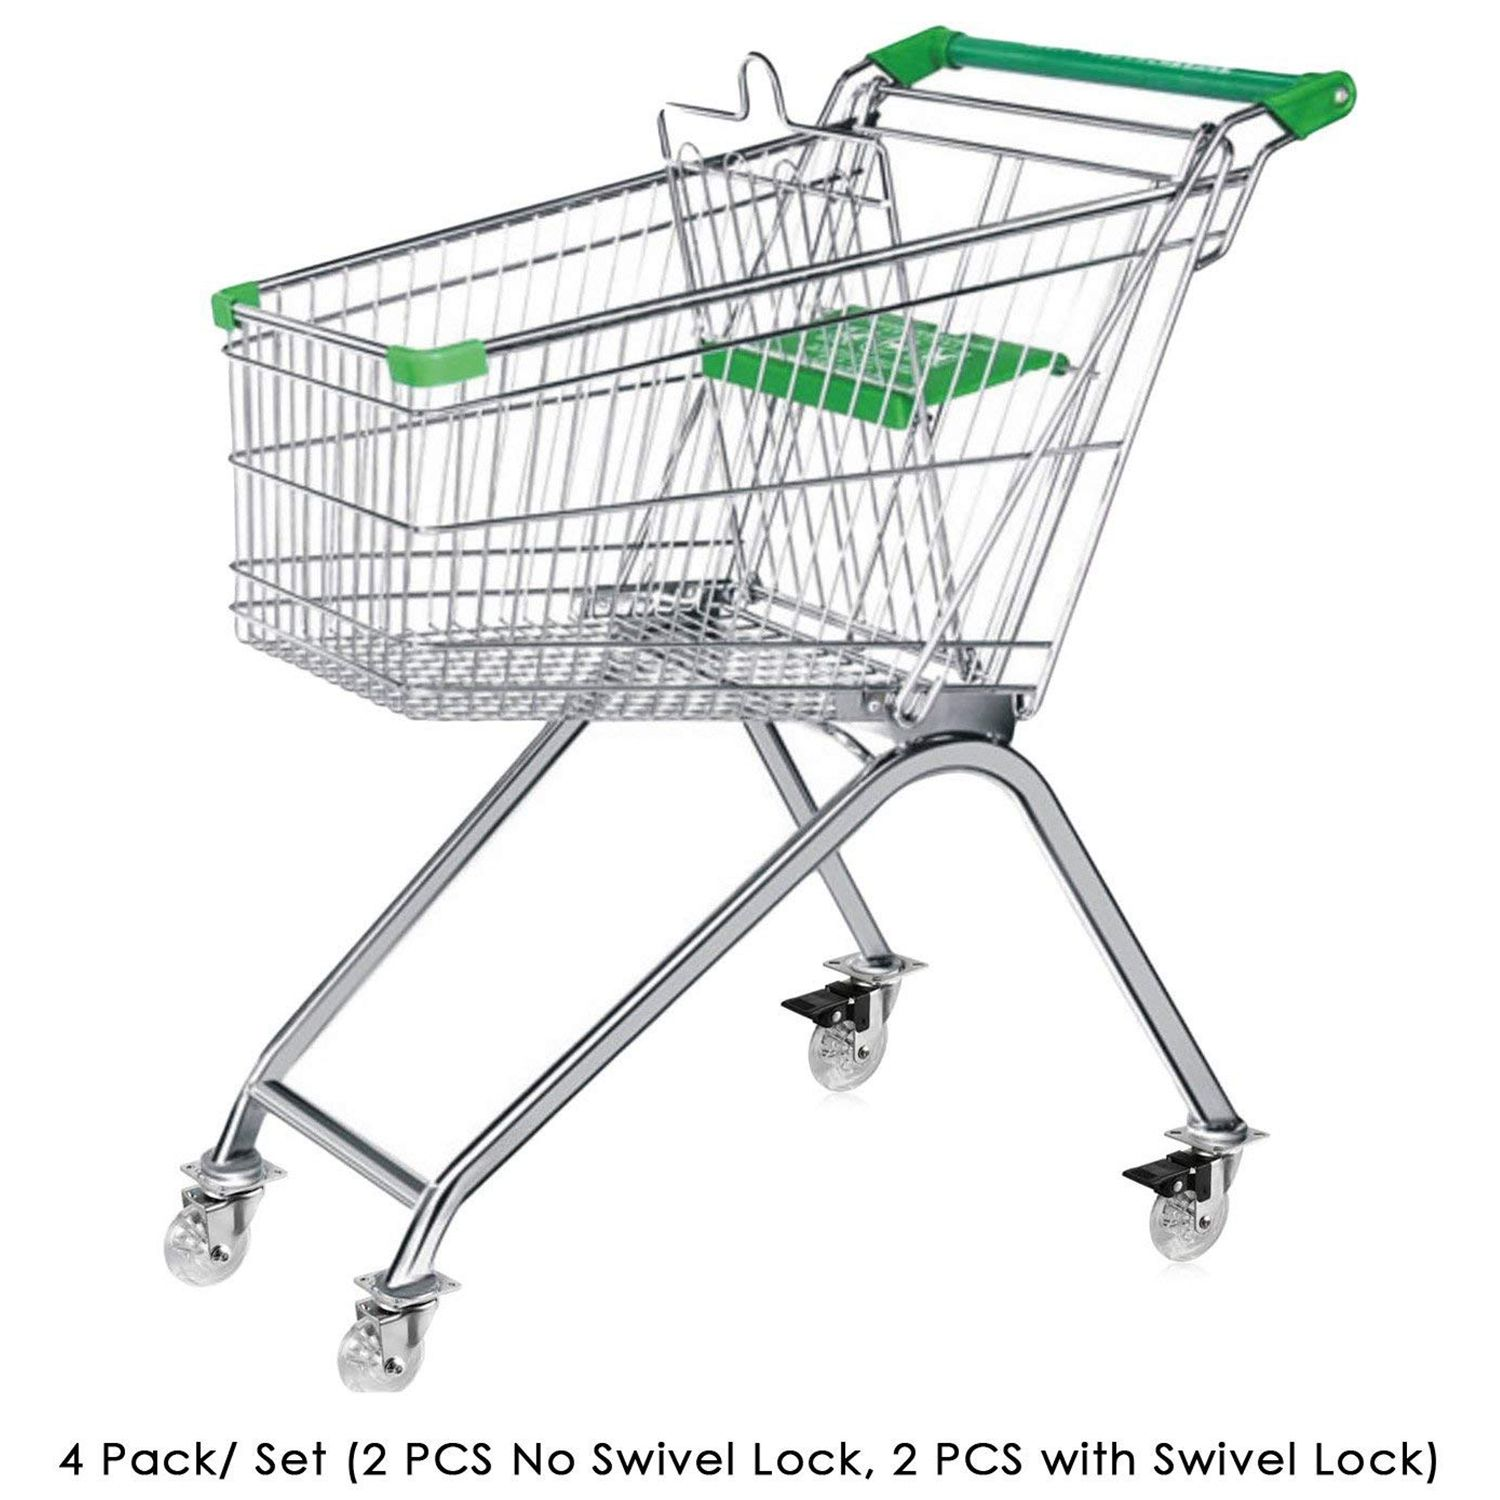 Casters Home Improvement Load Capacity 100kg Per Wheel 4 X Heavy Duty 75mm Swivel Castor Wheels Trolley Furniture Caster With Brakes